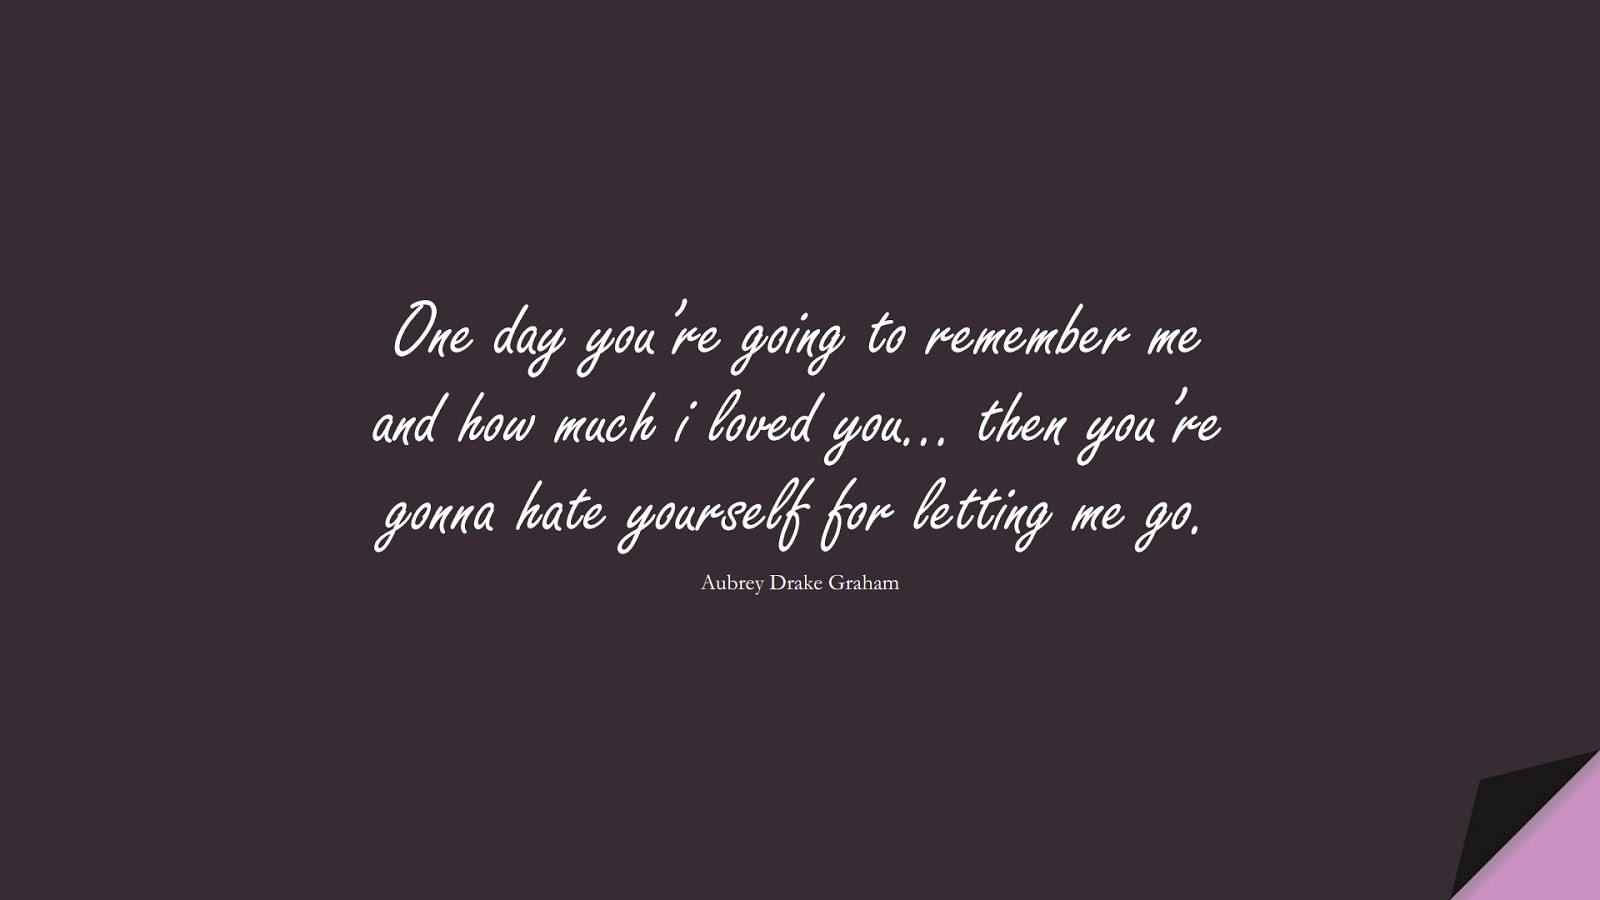 One day you're going to remember me and how much i loved you… then you're gonna hate yourself for letting me go. (Aubrey Drake Graham);  #SadLoveQuotes